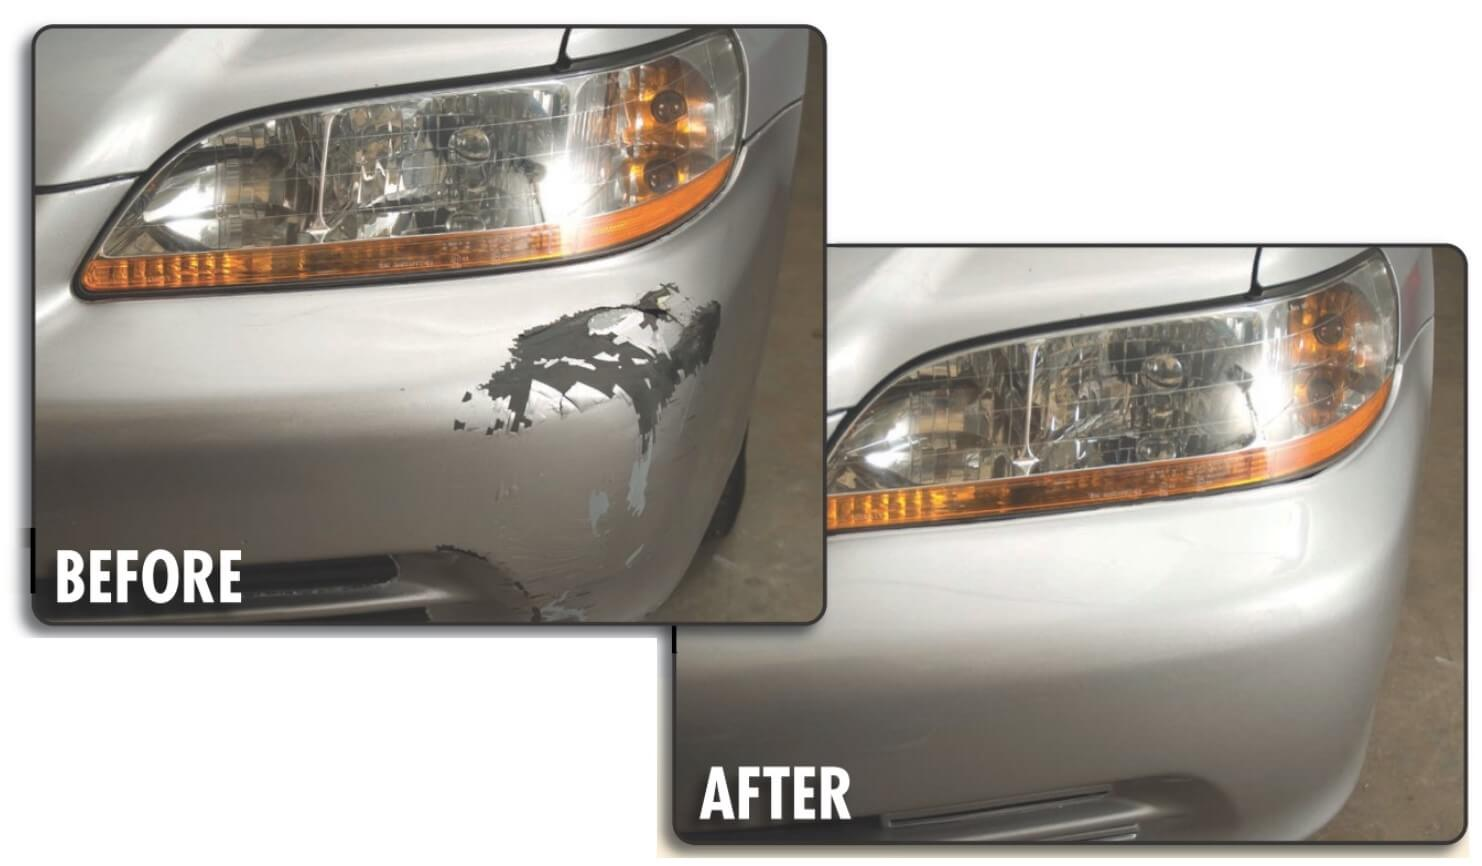 Autocolor Small Damage Small Repair Small Price